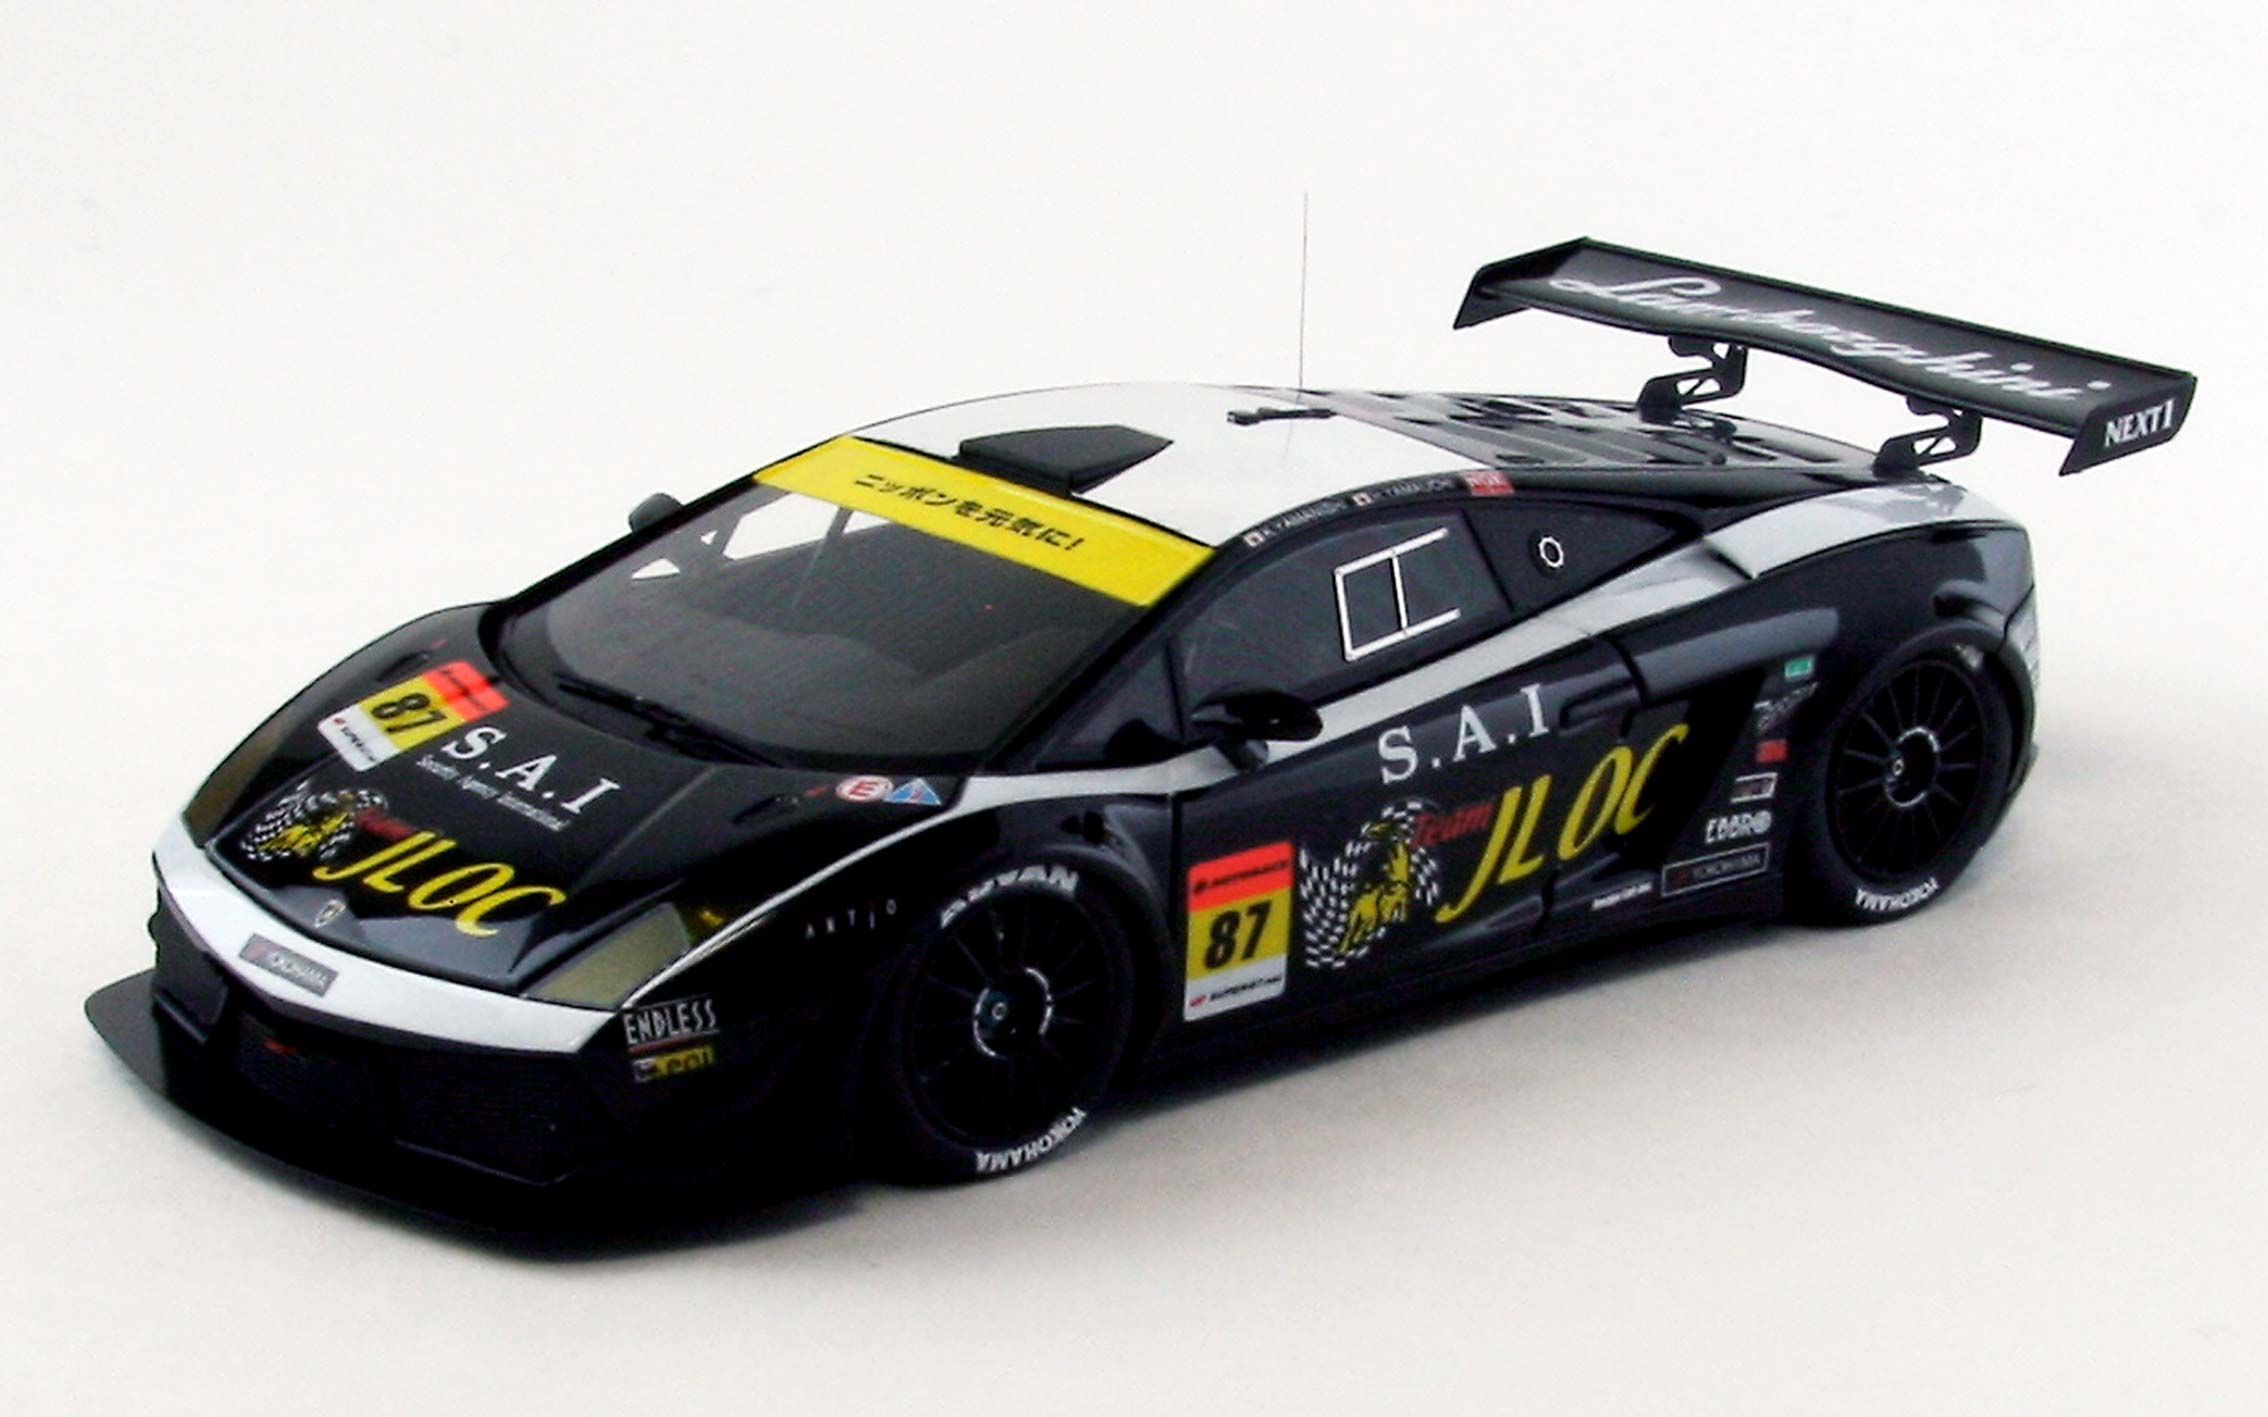 【44955】【MAKE UP】JLOC LAMBORGHINI GT3 SUPER GT300 2012 No. 87 【RESIN】